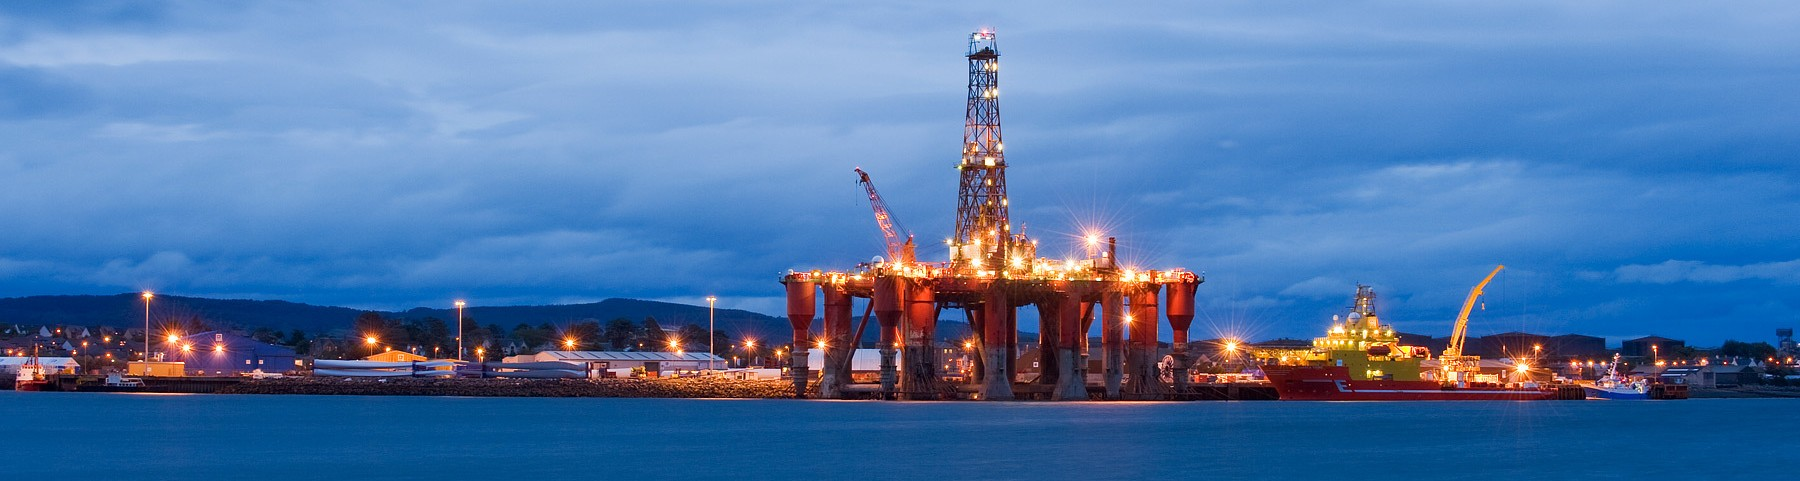 Oil_rigs_North_Sea_oil_Scotland_UK-e1404116581827